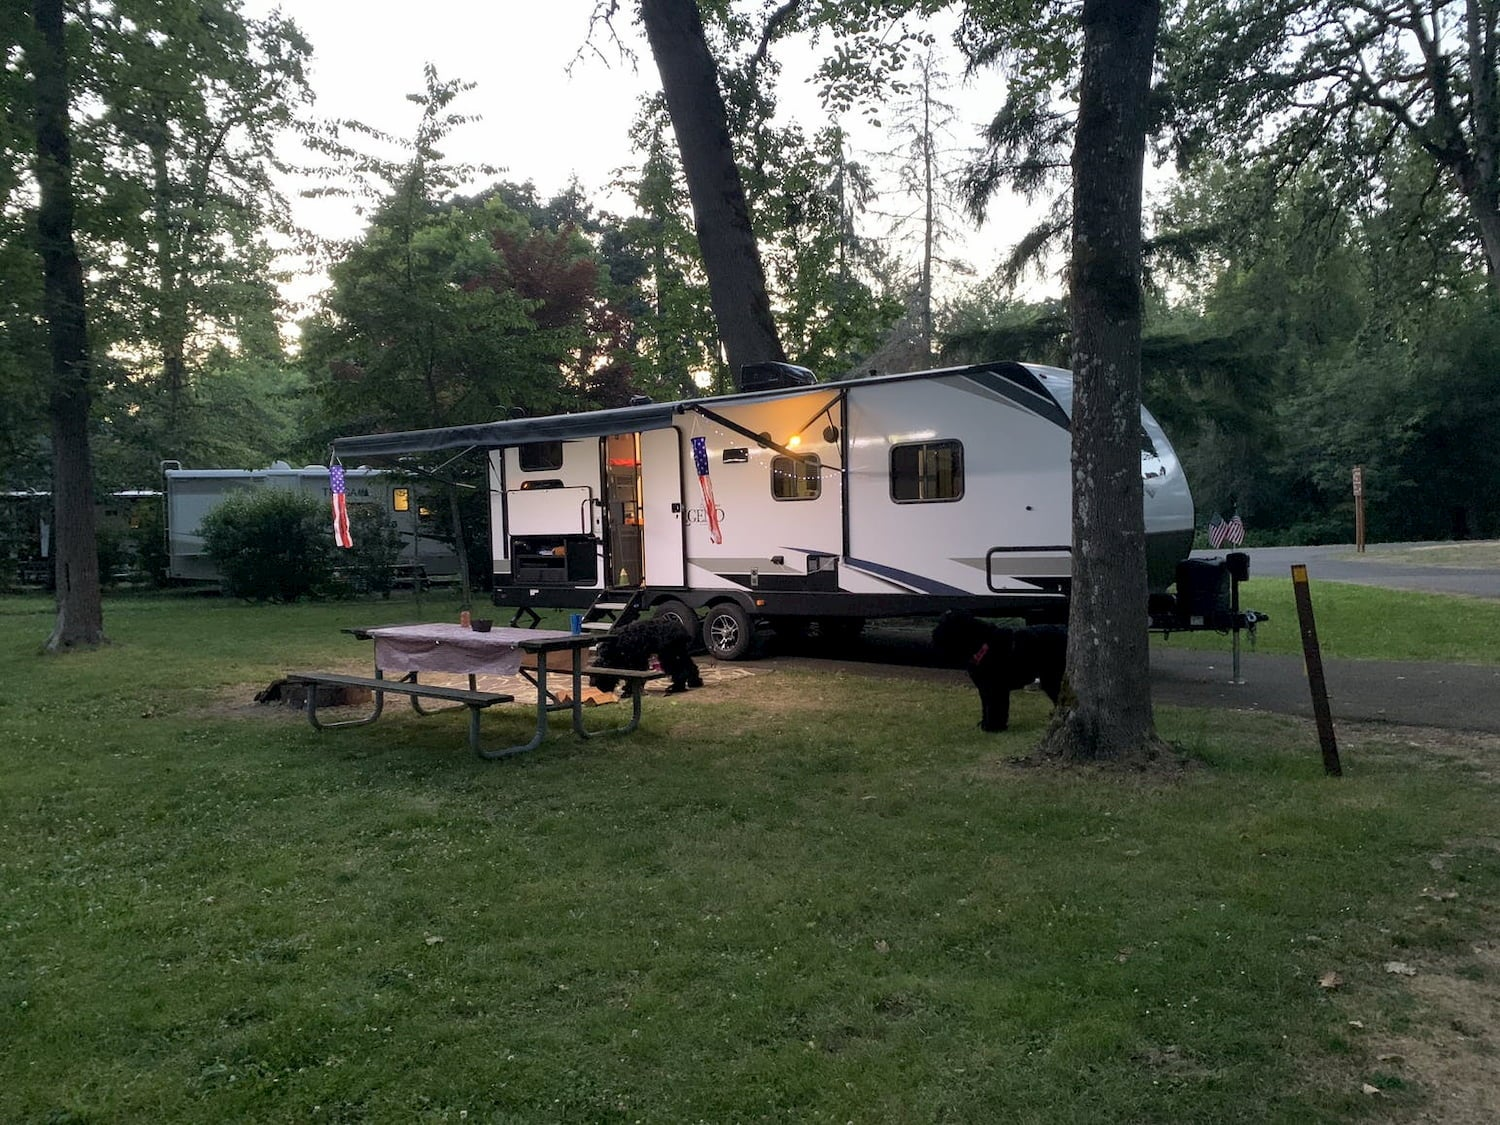 pull-behind trailer at campground